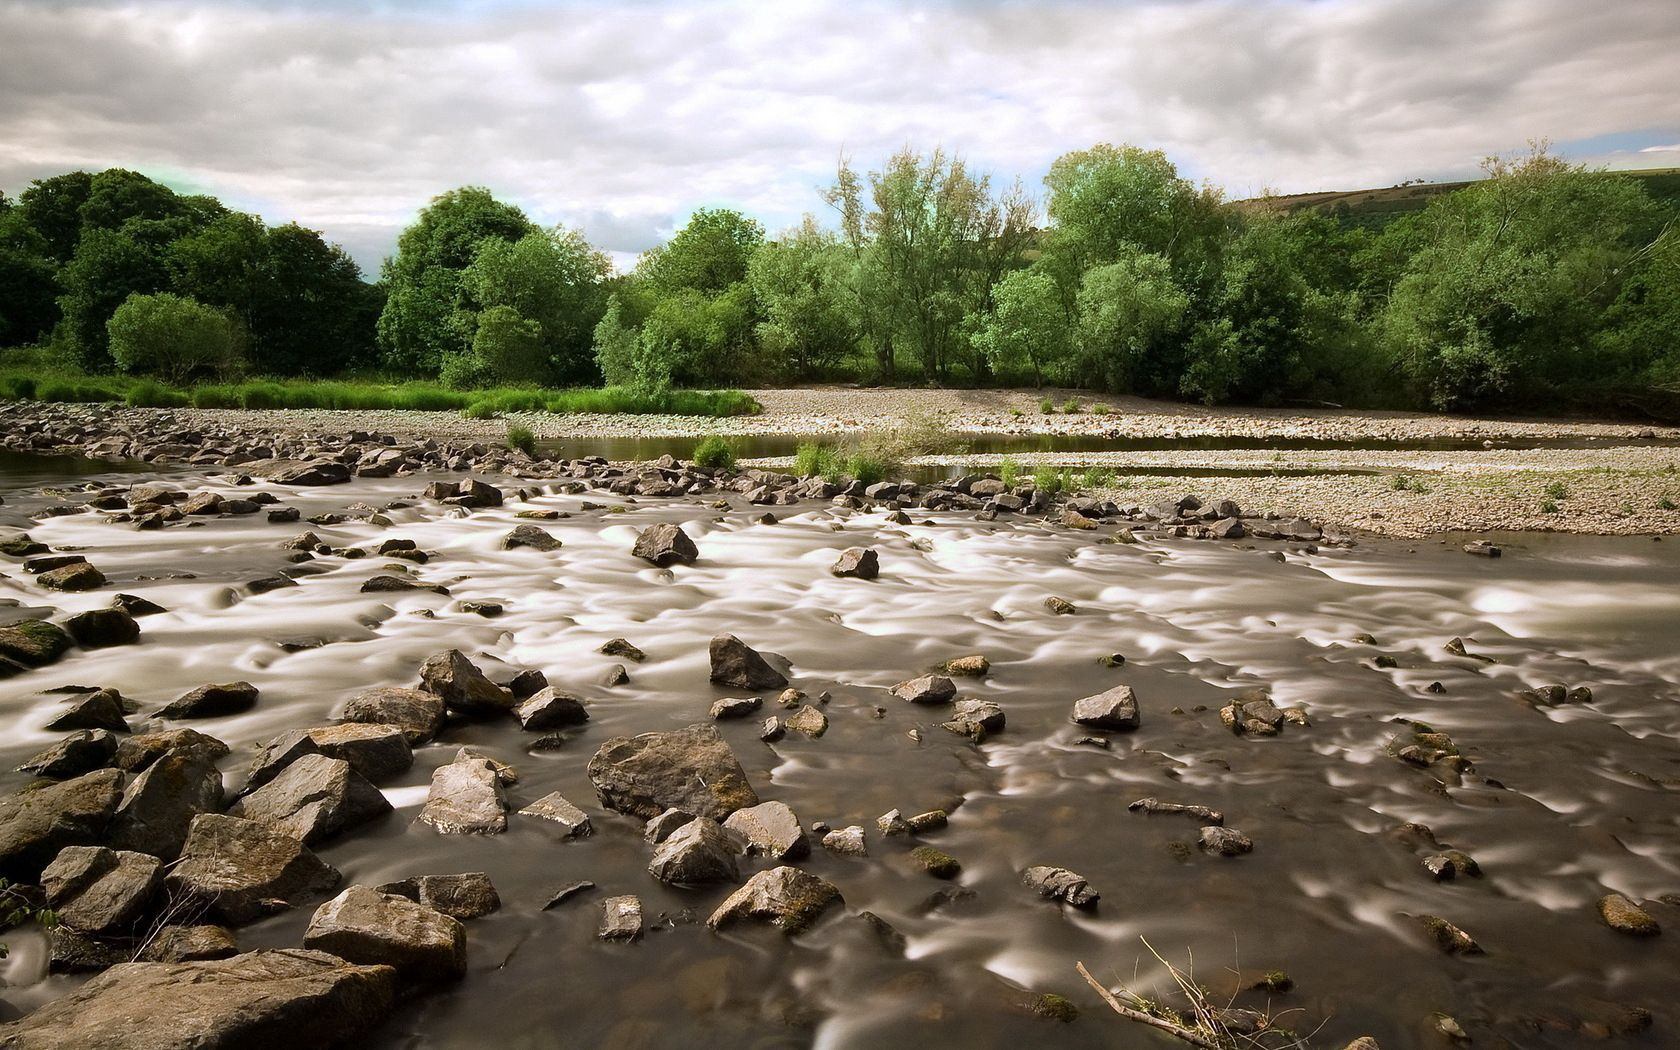 84819 download wallpaper Nature, Stones, Mountain River, Trees screensavers and pictures for free